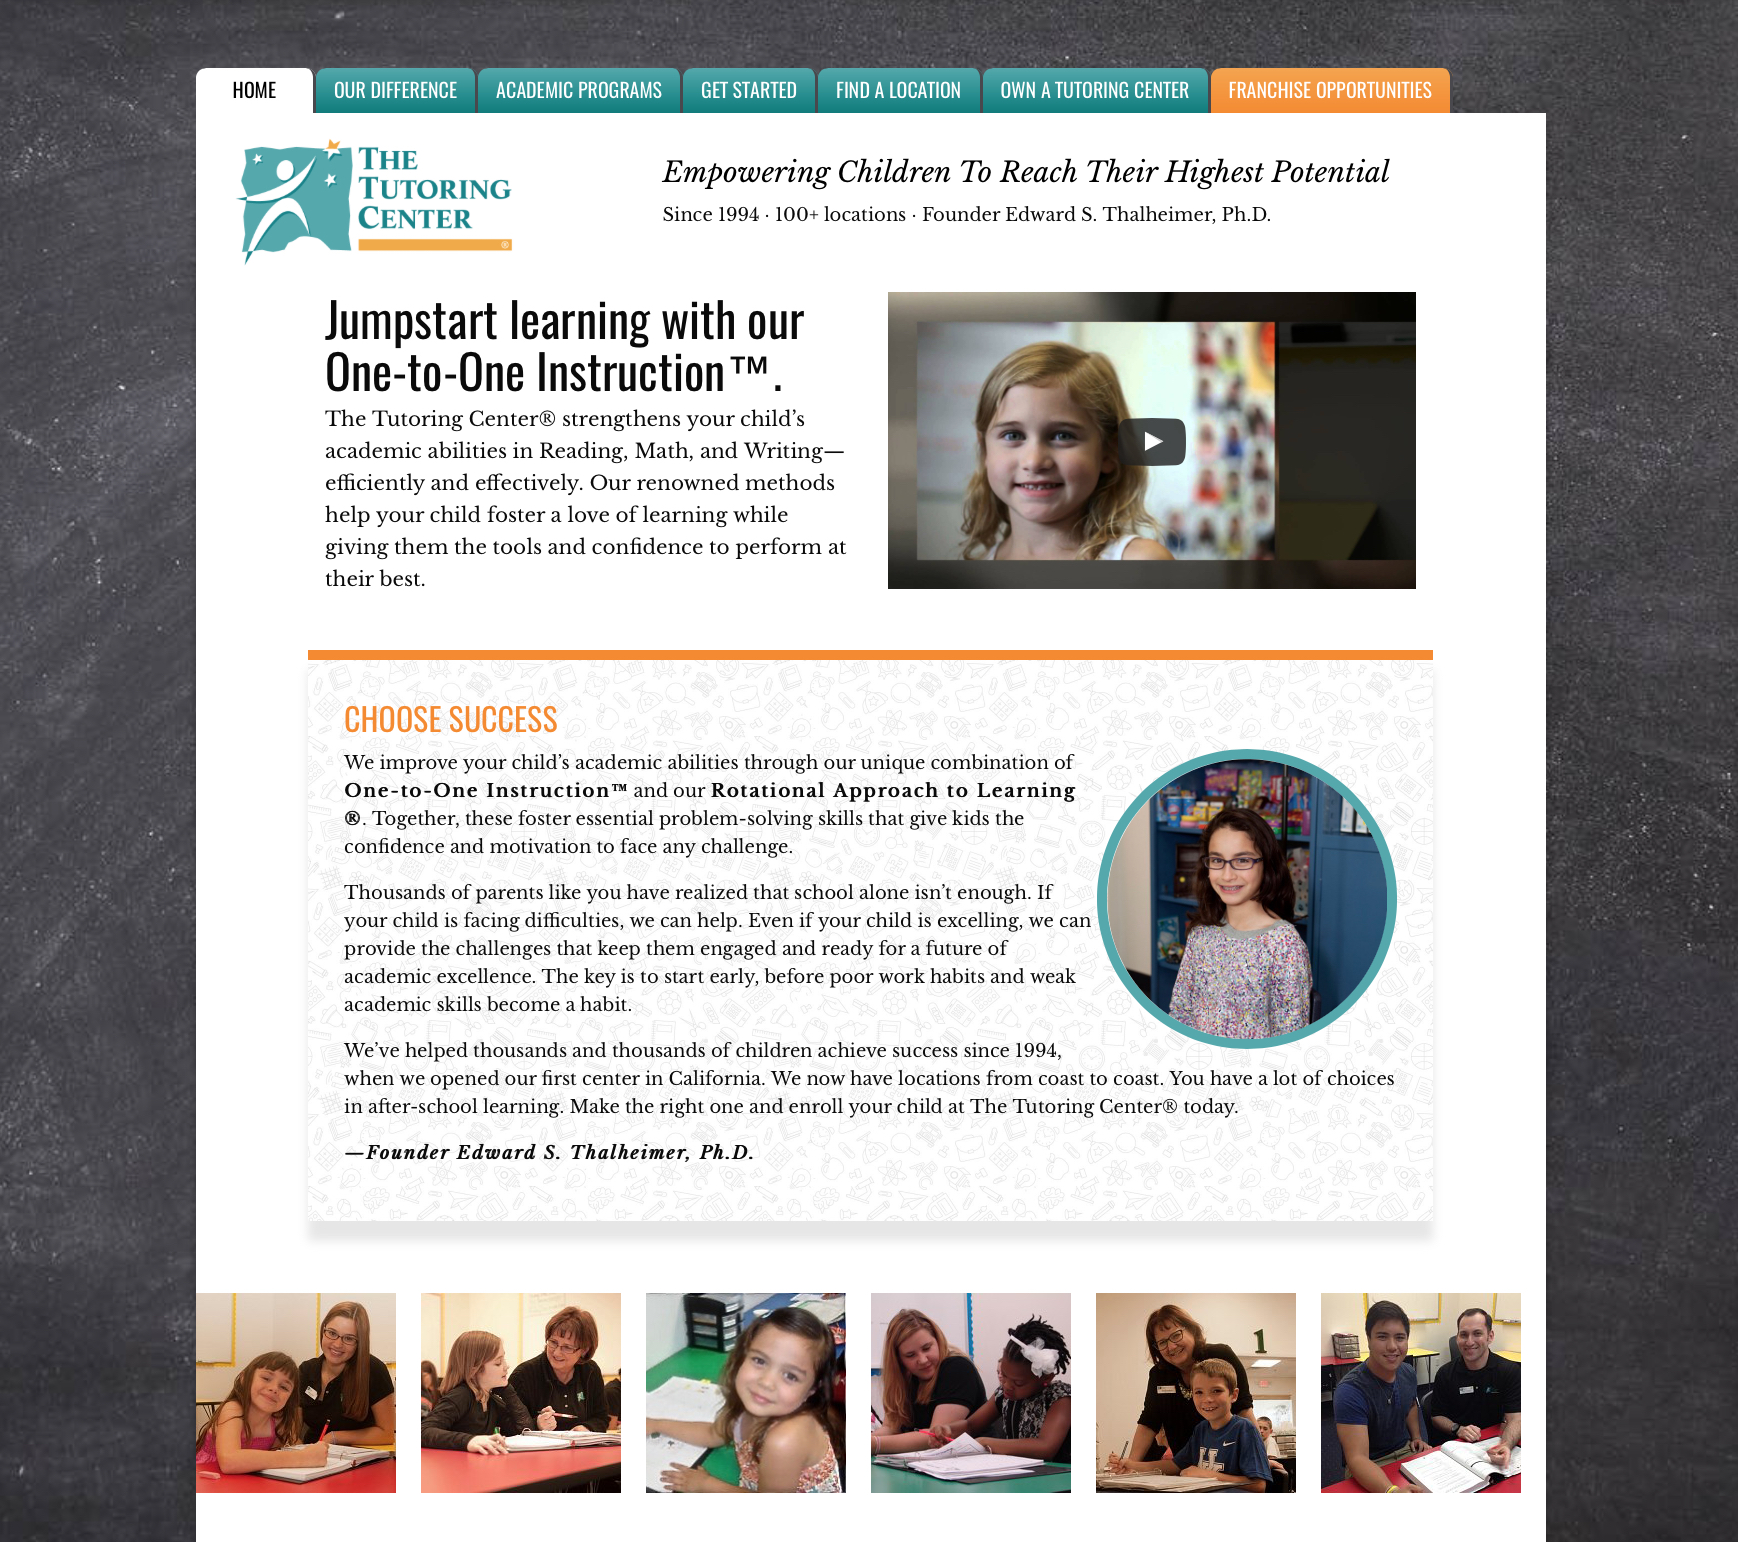 Homepage of The Tutoring Center